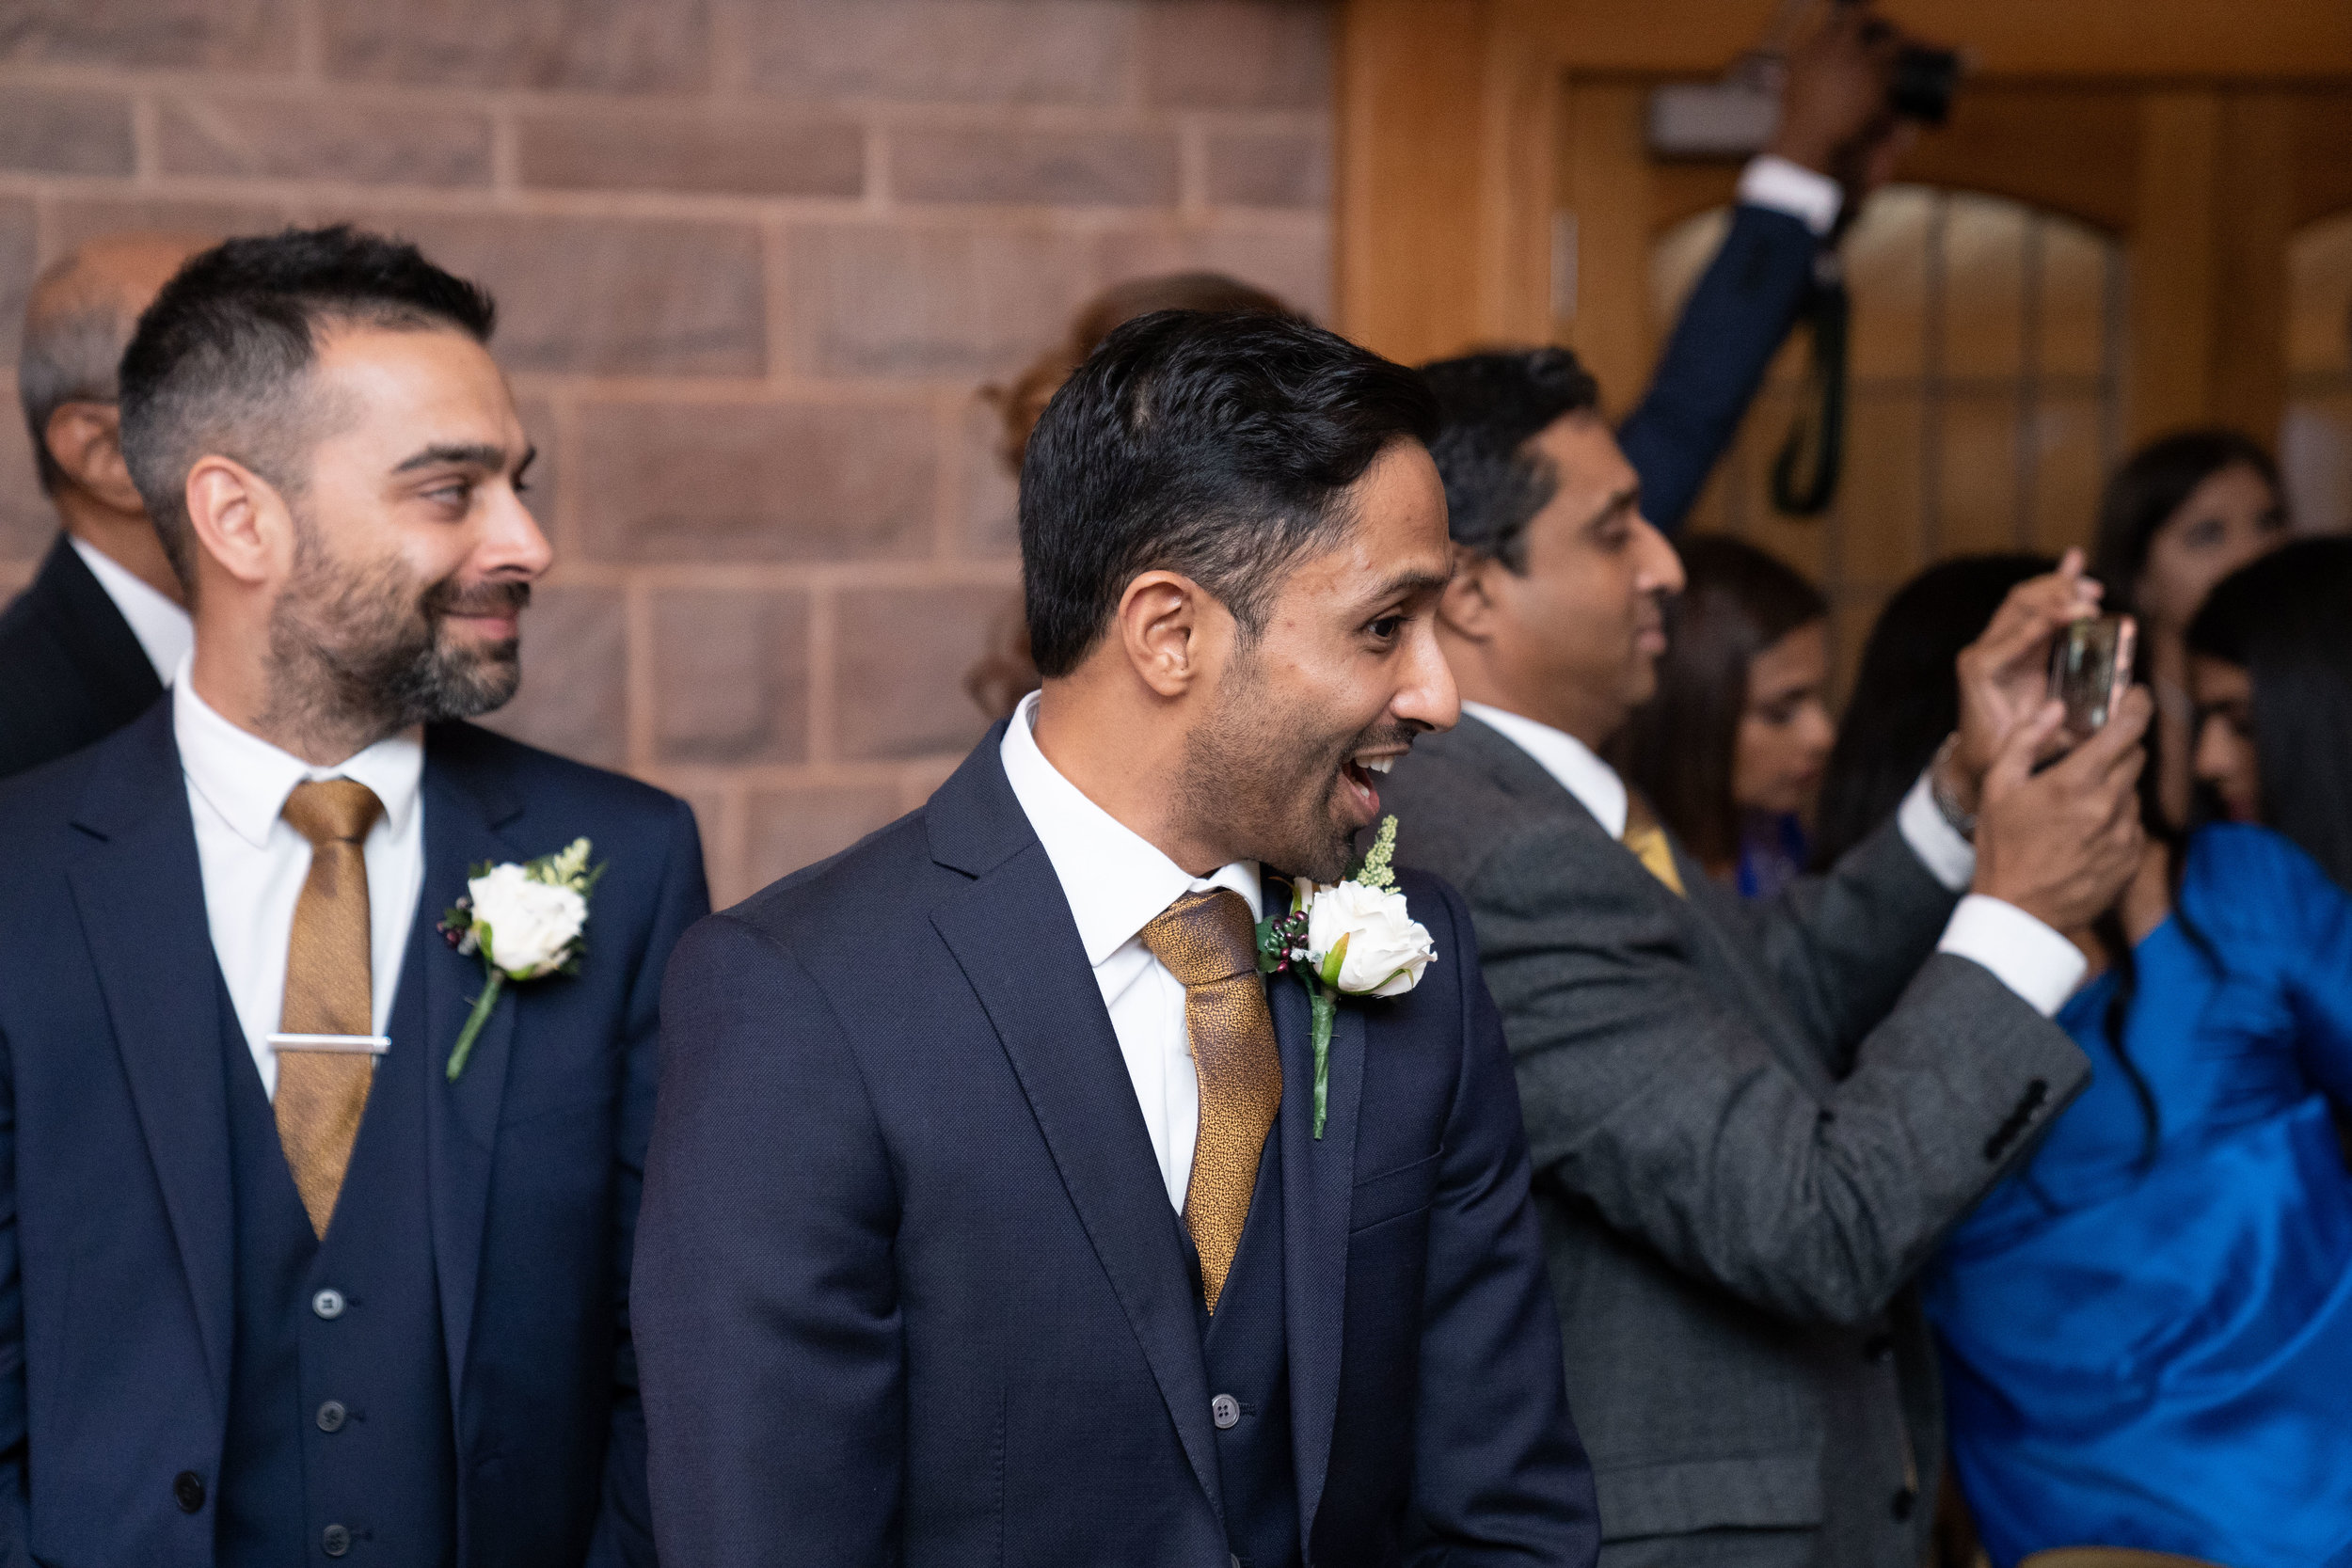 christmas-winter-wedding-photography-videography-heaton-house-31